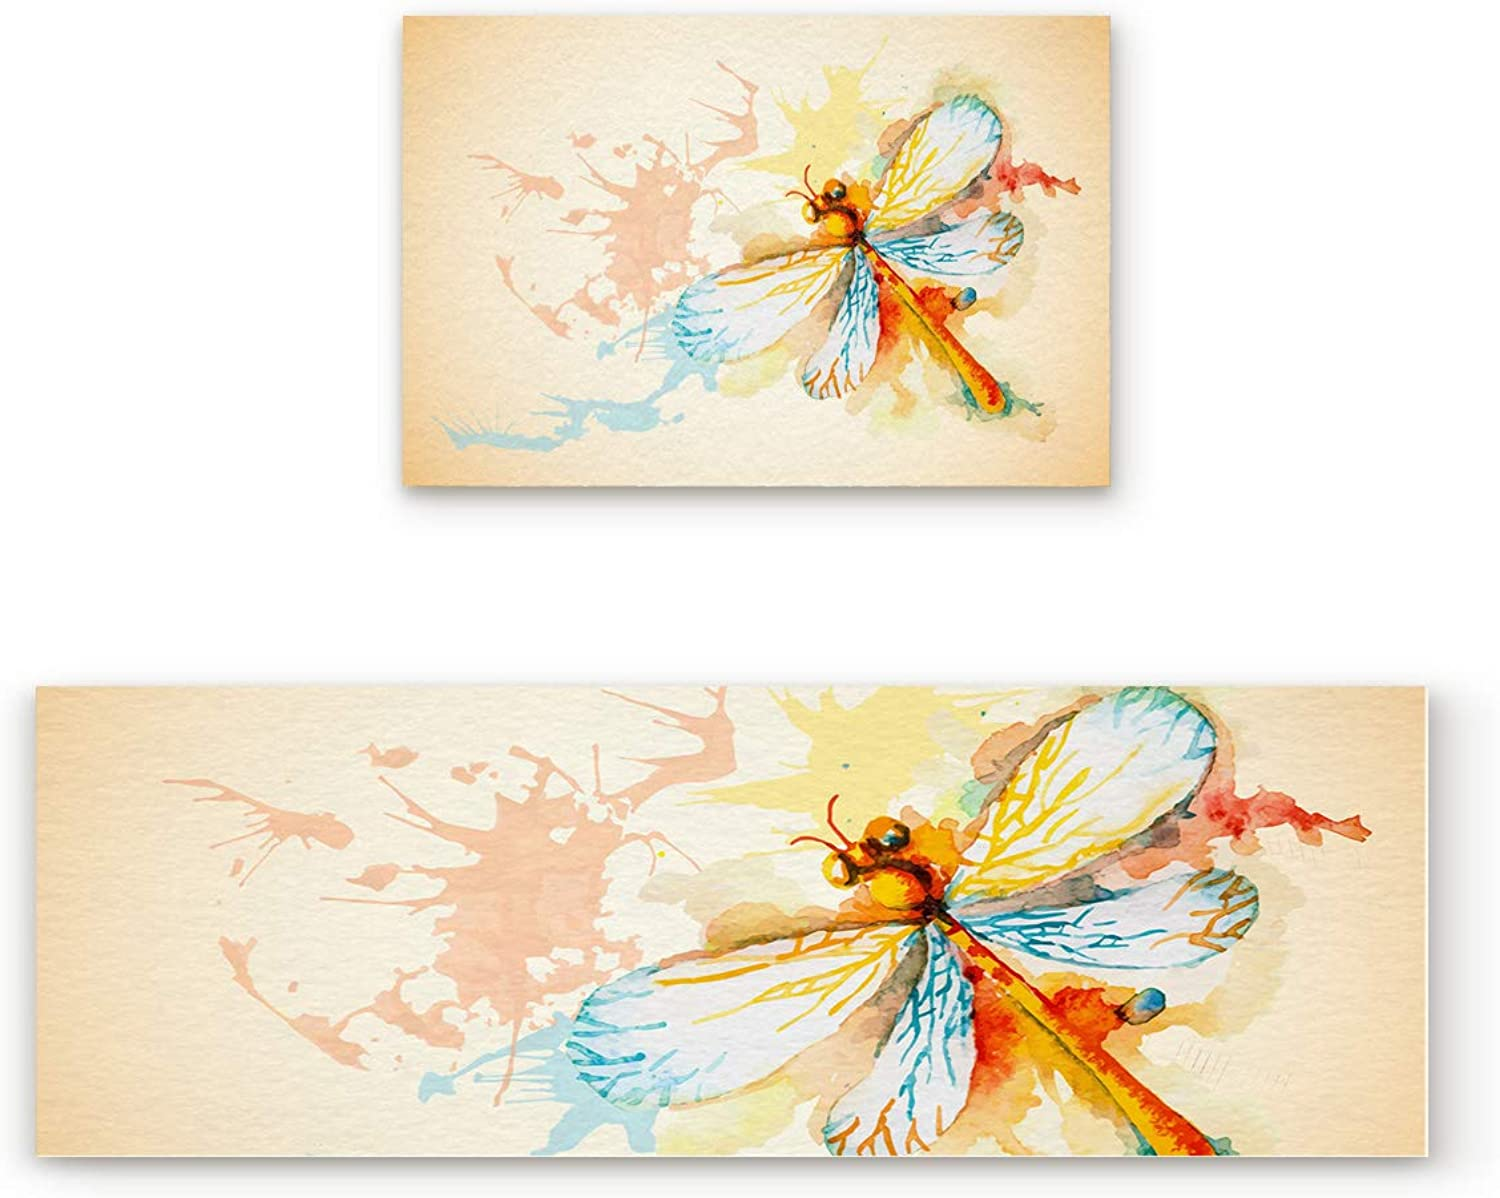 Aomike 2 Piece Non-Slip Kitchen Mat Rubber Backing Doormat Watercolor Dragonfly Runner Rug Set, Hallway Living Room Balcony Bathroom Carpet Sets (19.7  x 31.5 +19.7  x 47.2 )